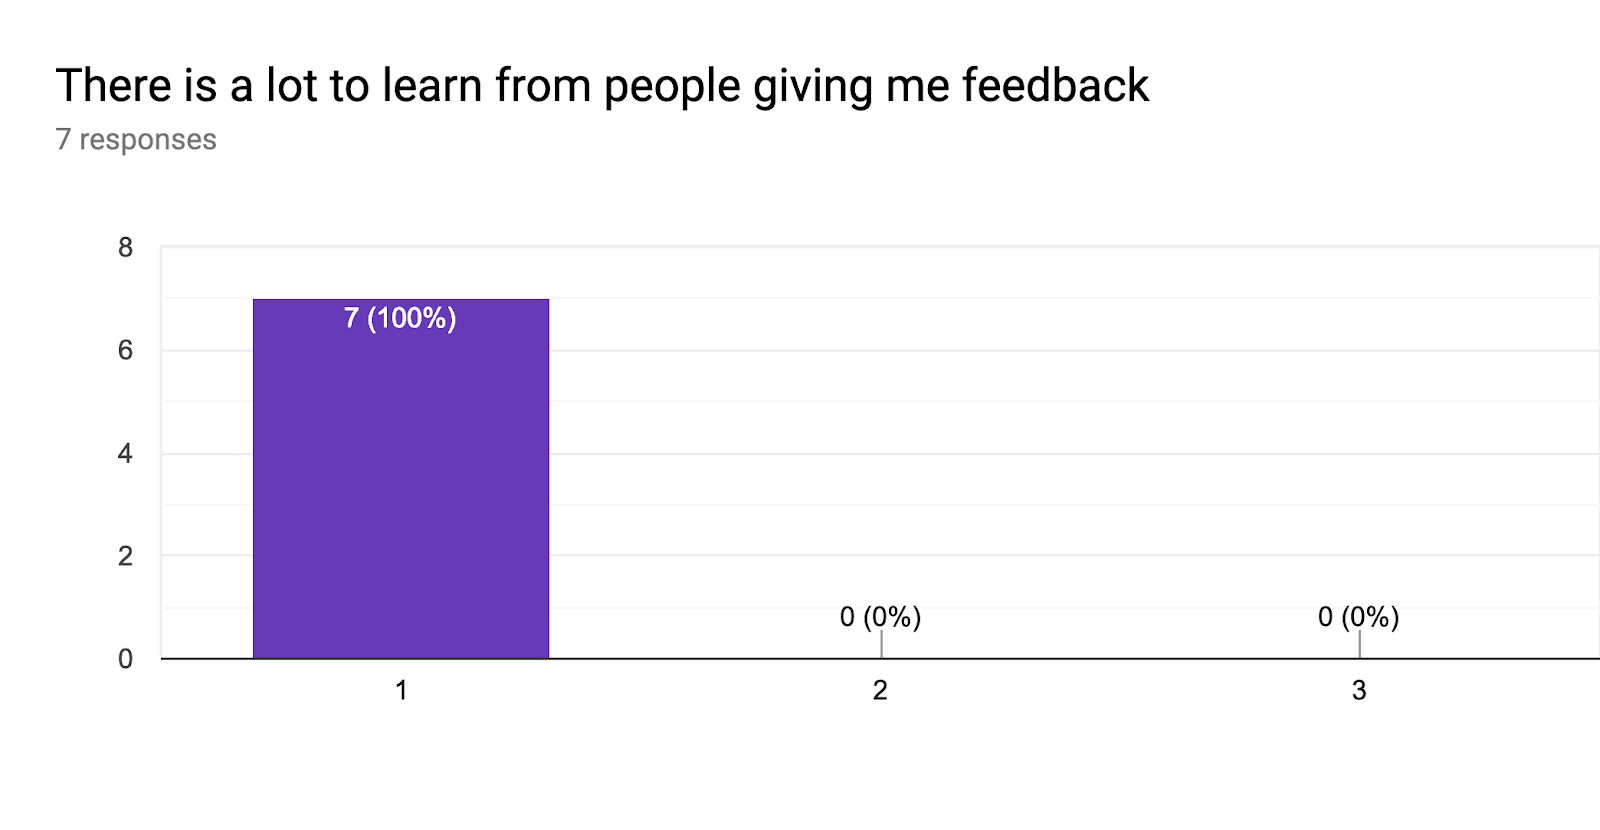 Forms response chart. Question title: There is a lot to learn from people giving me feedback. Number of responses: 7 responses.